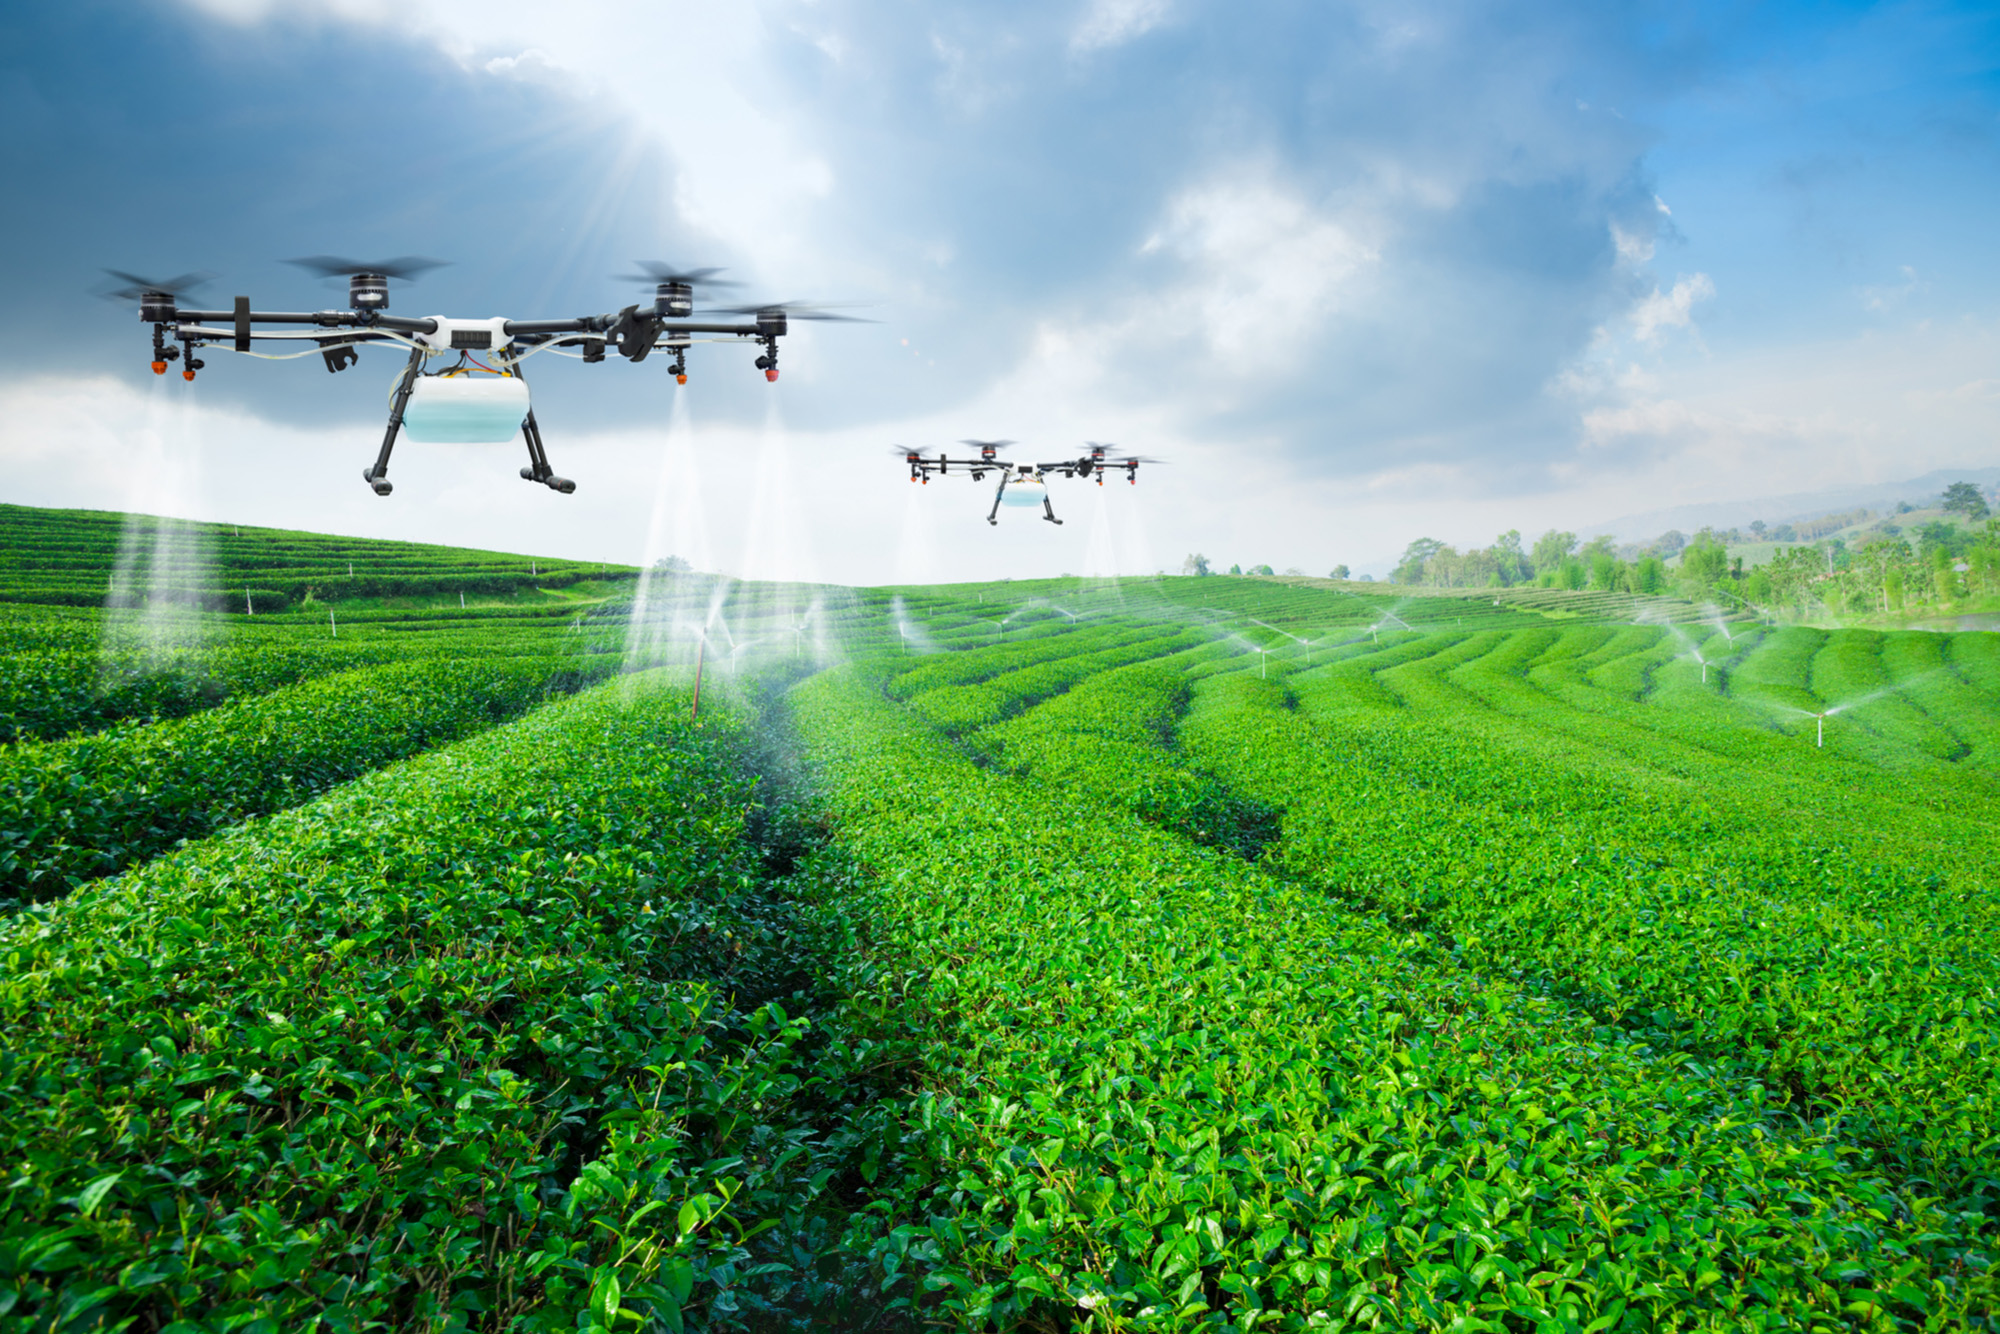 Agriculture drone fly to sprayed fertilizer on the green tea fields-72 ppi